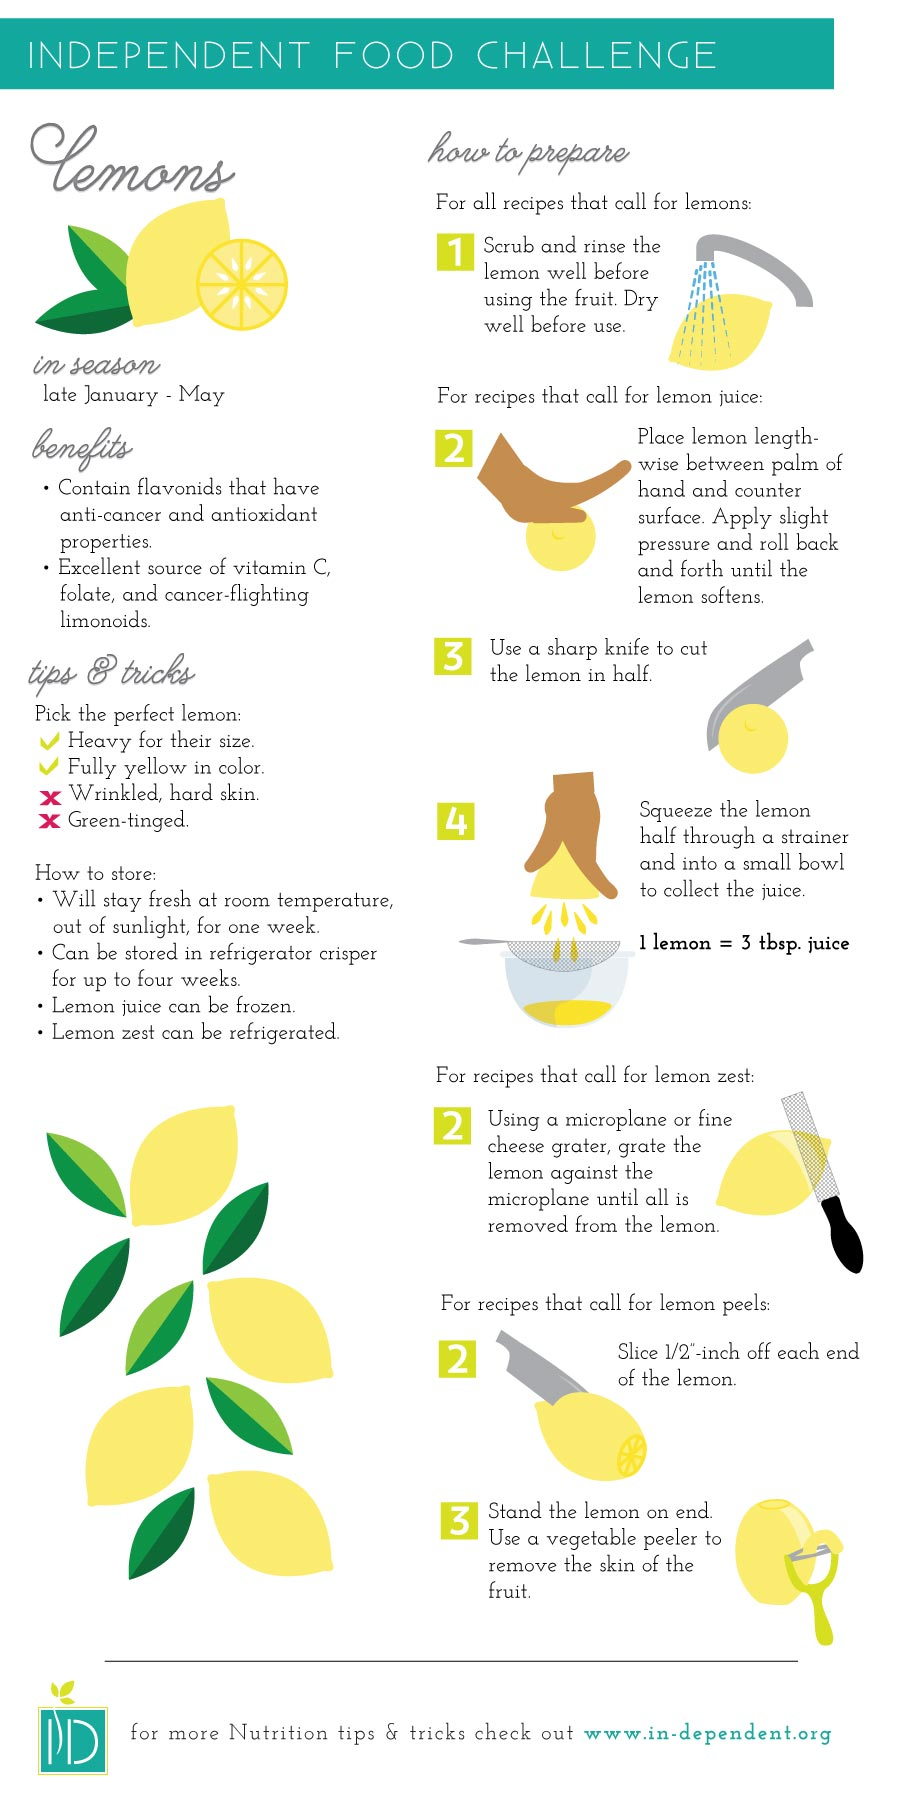 How to prepare Lemons